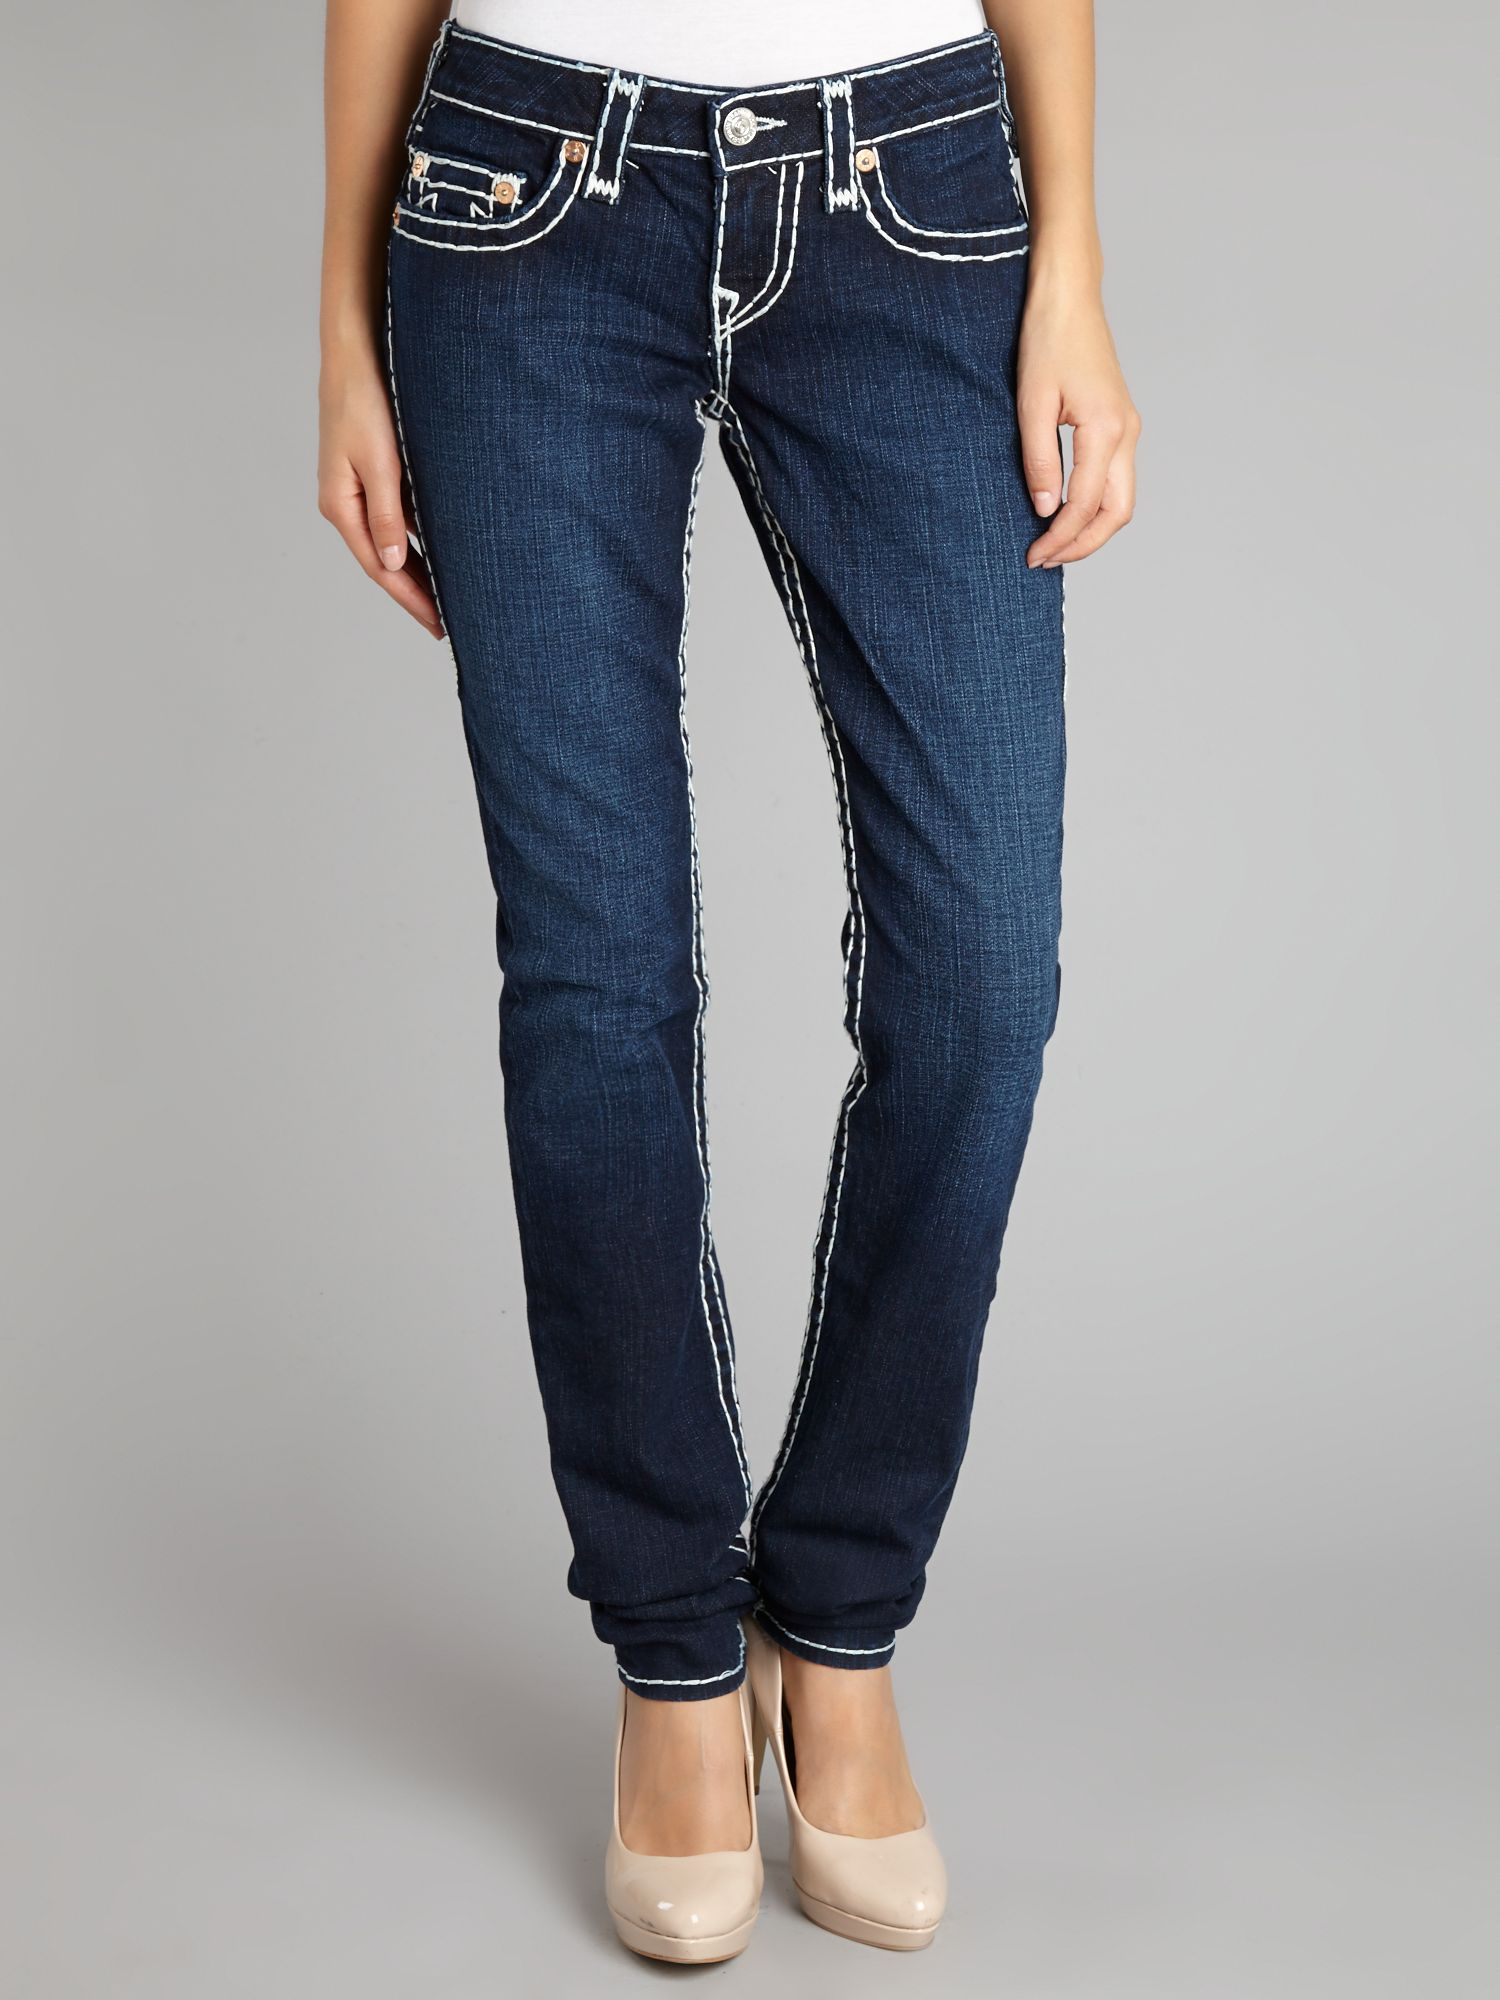 Stella super-t skinny jeans in Lonestar